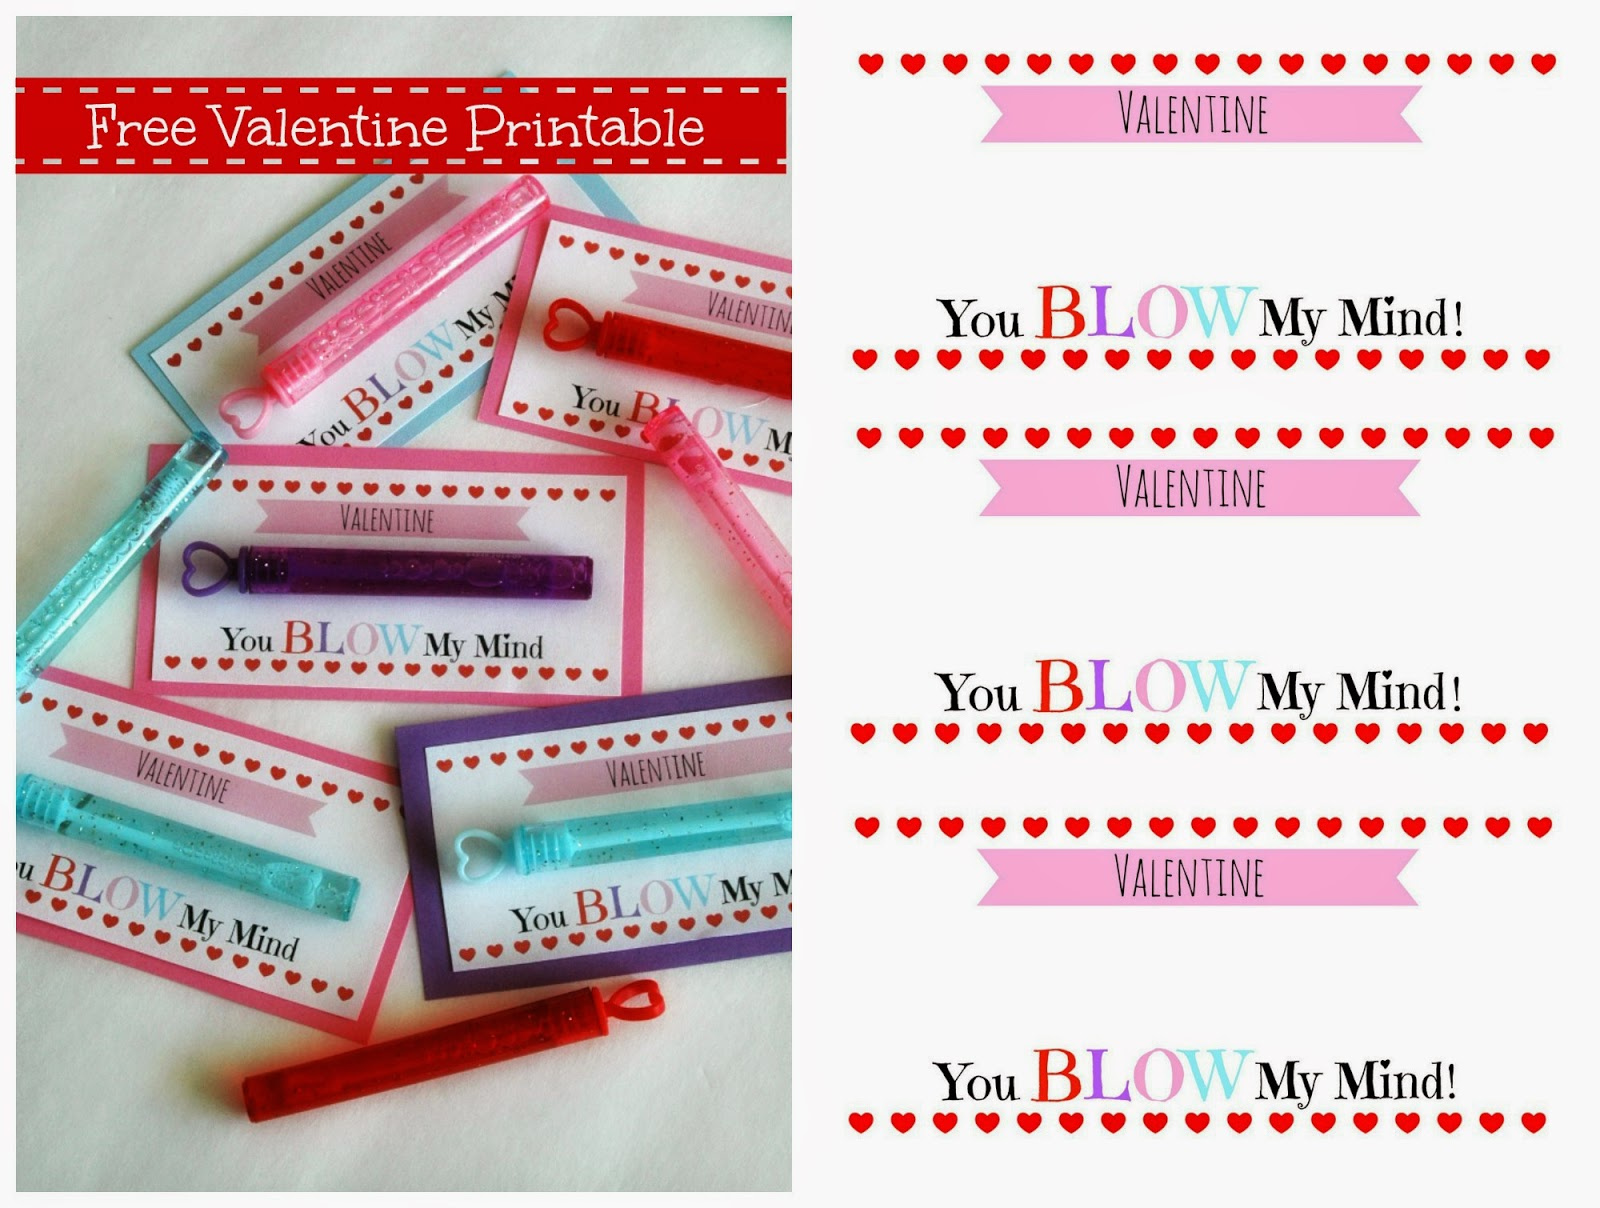 Valentine you blow my mind printable (1)